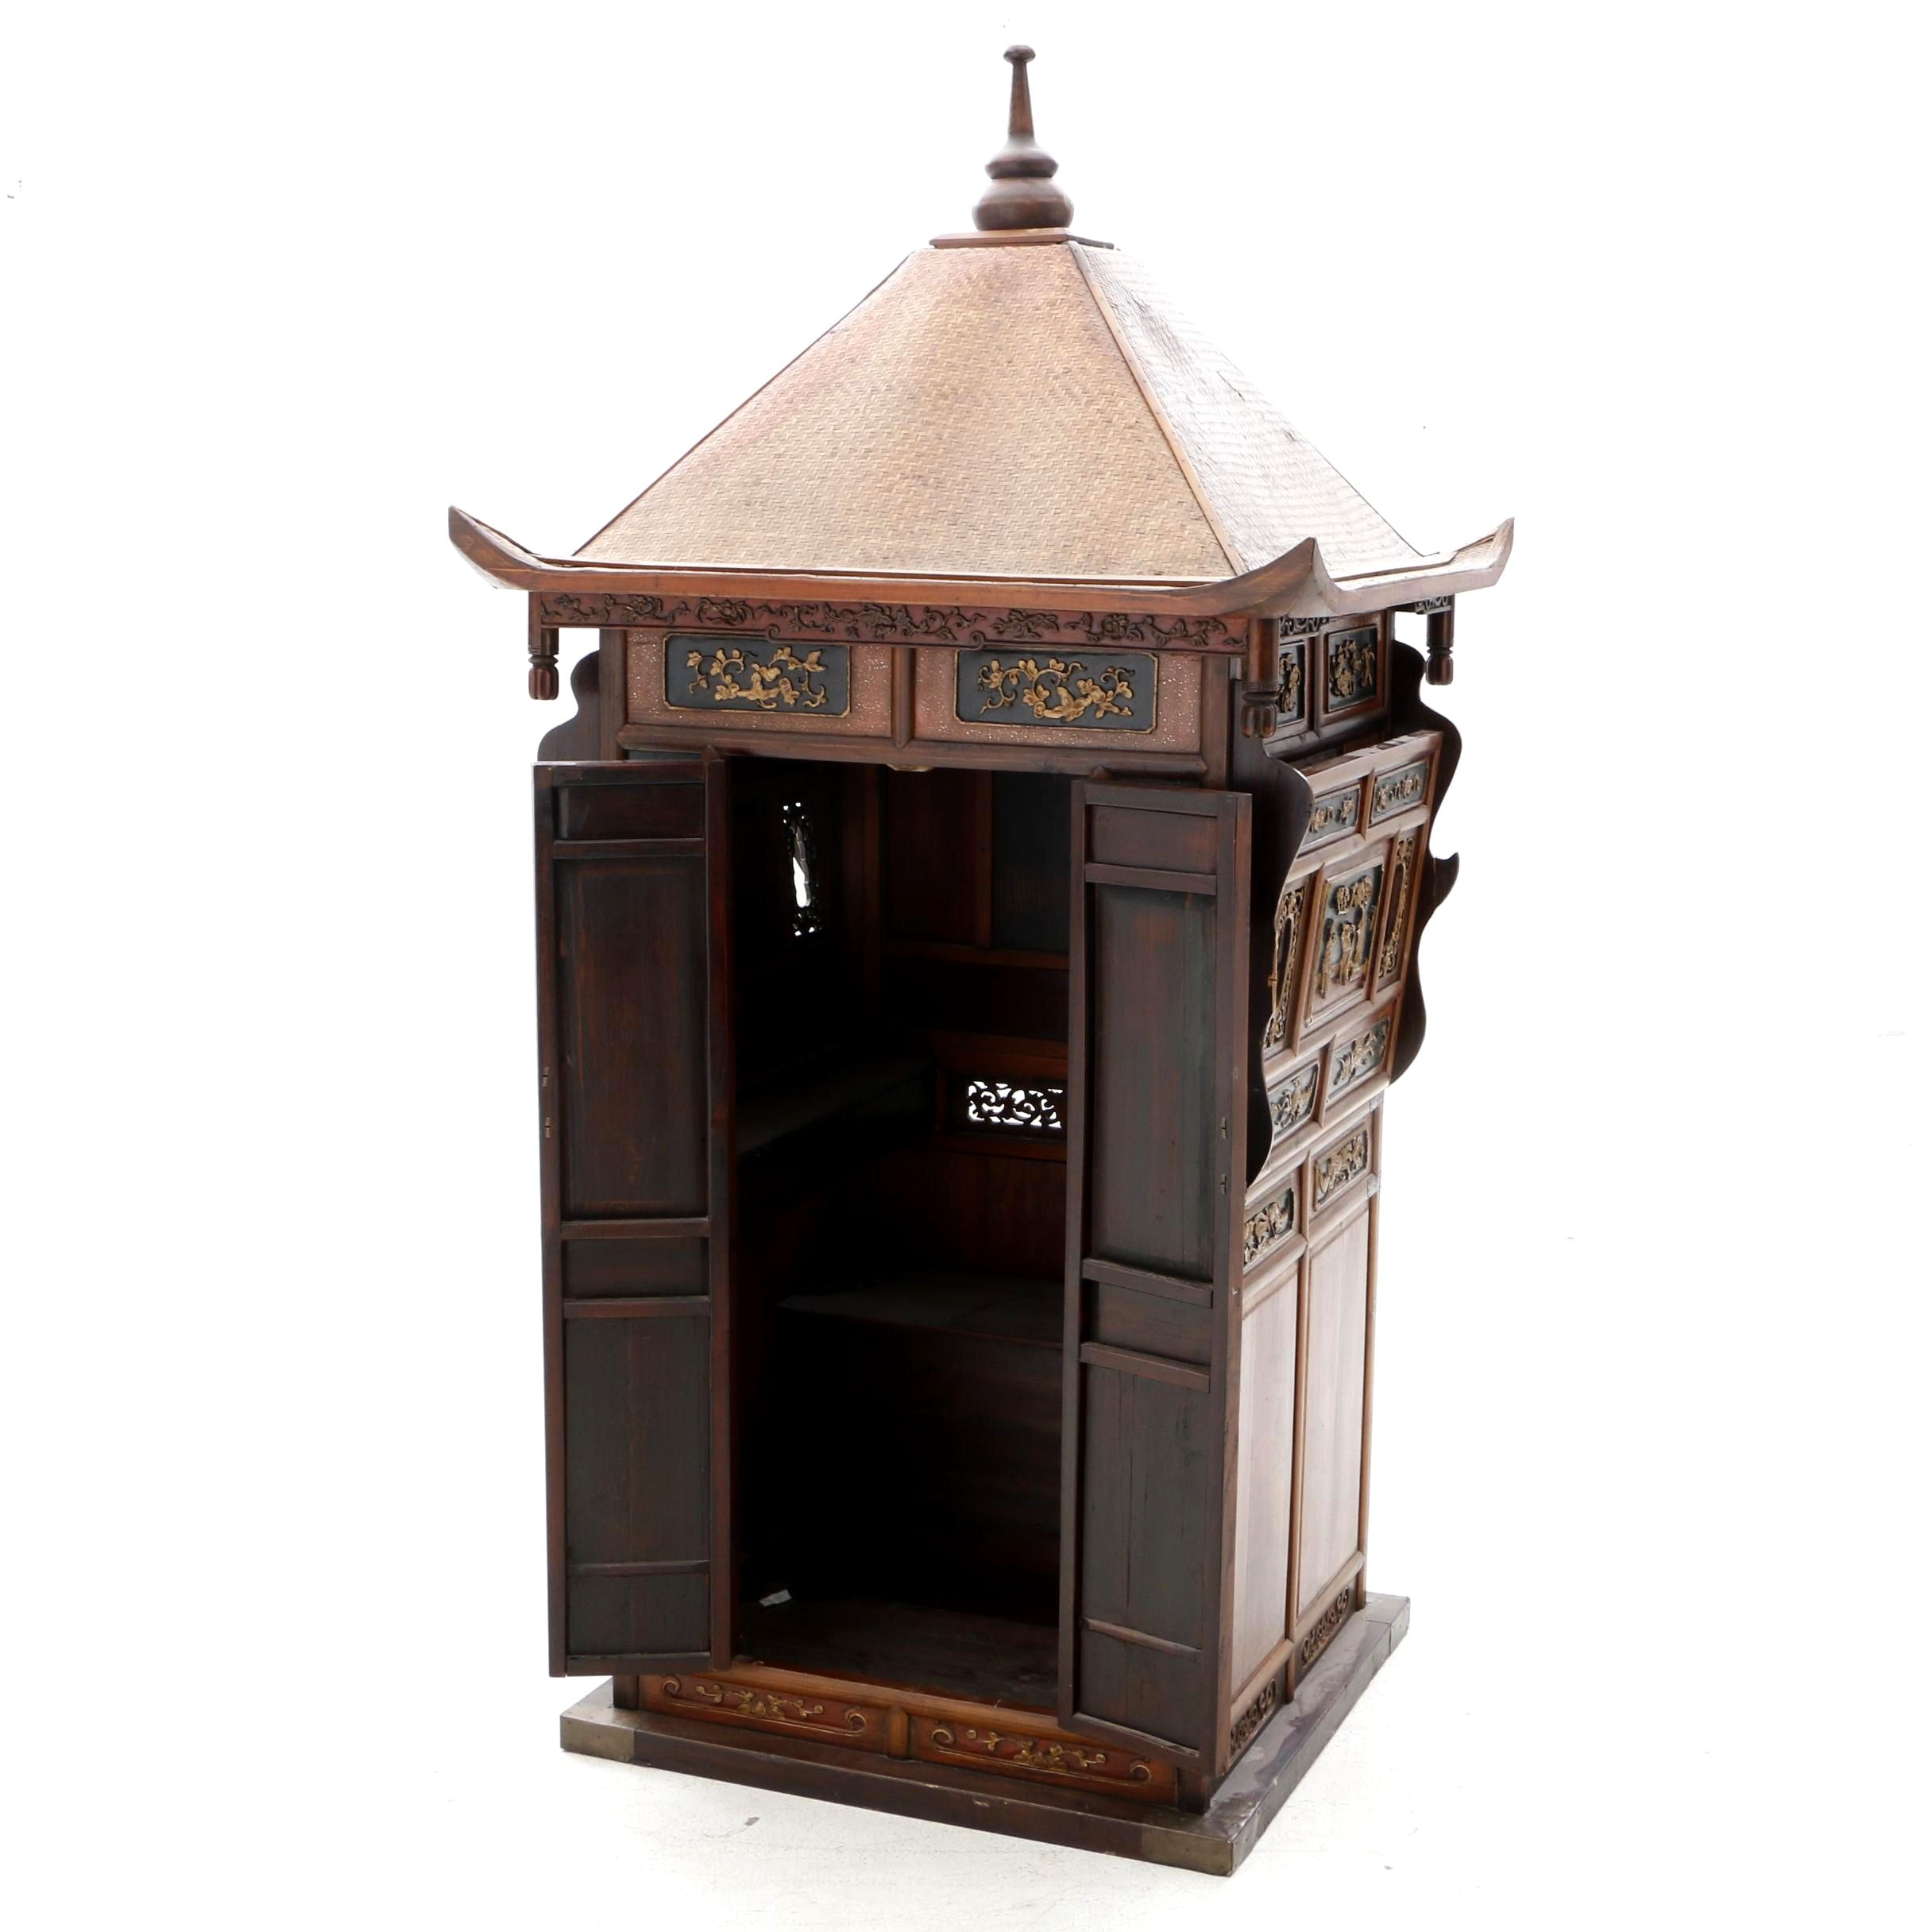 Chinese Painted and Carved Wood Bridal Sedan Chair, Qing Dynasty